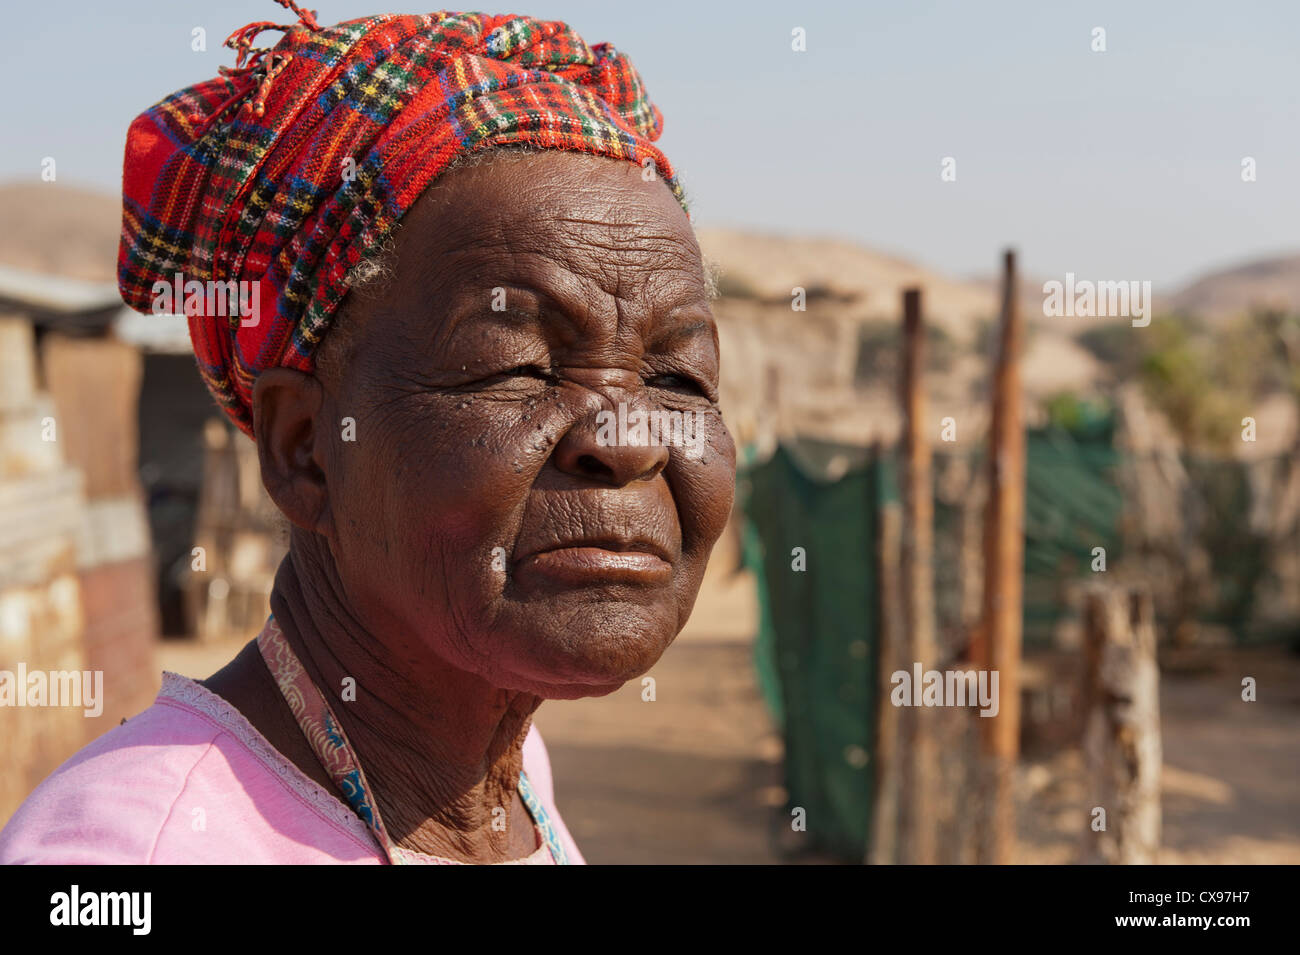 Older African woman in traditional dress - Stock Image